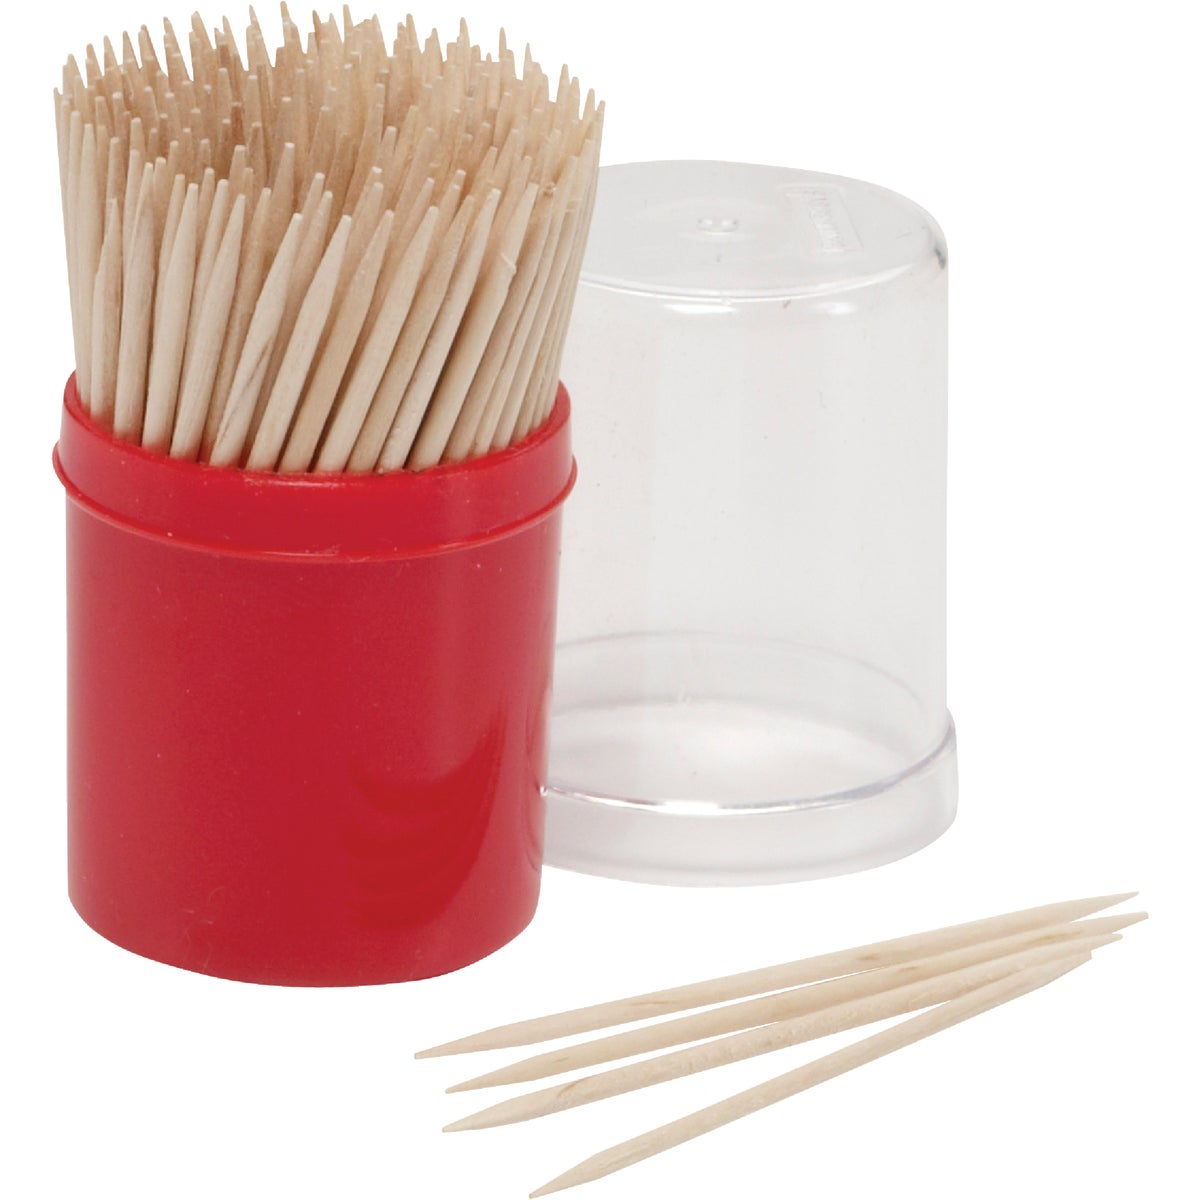 Lifetime Hoan TOOTHPICK DISPENSER 7430